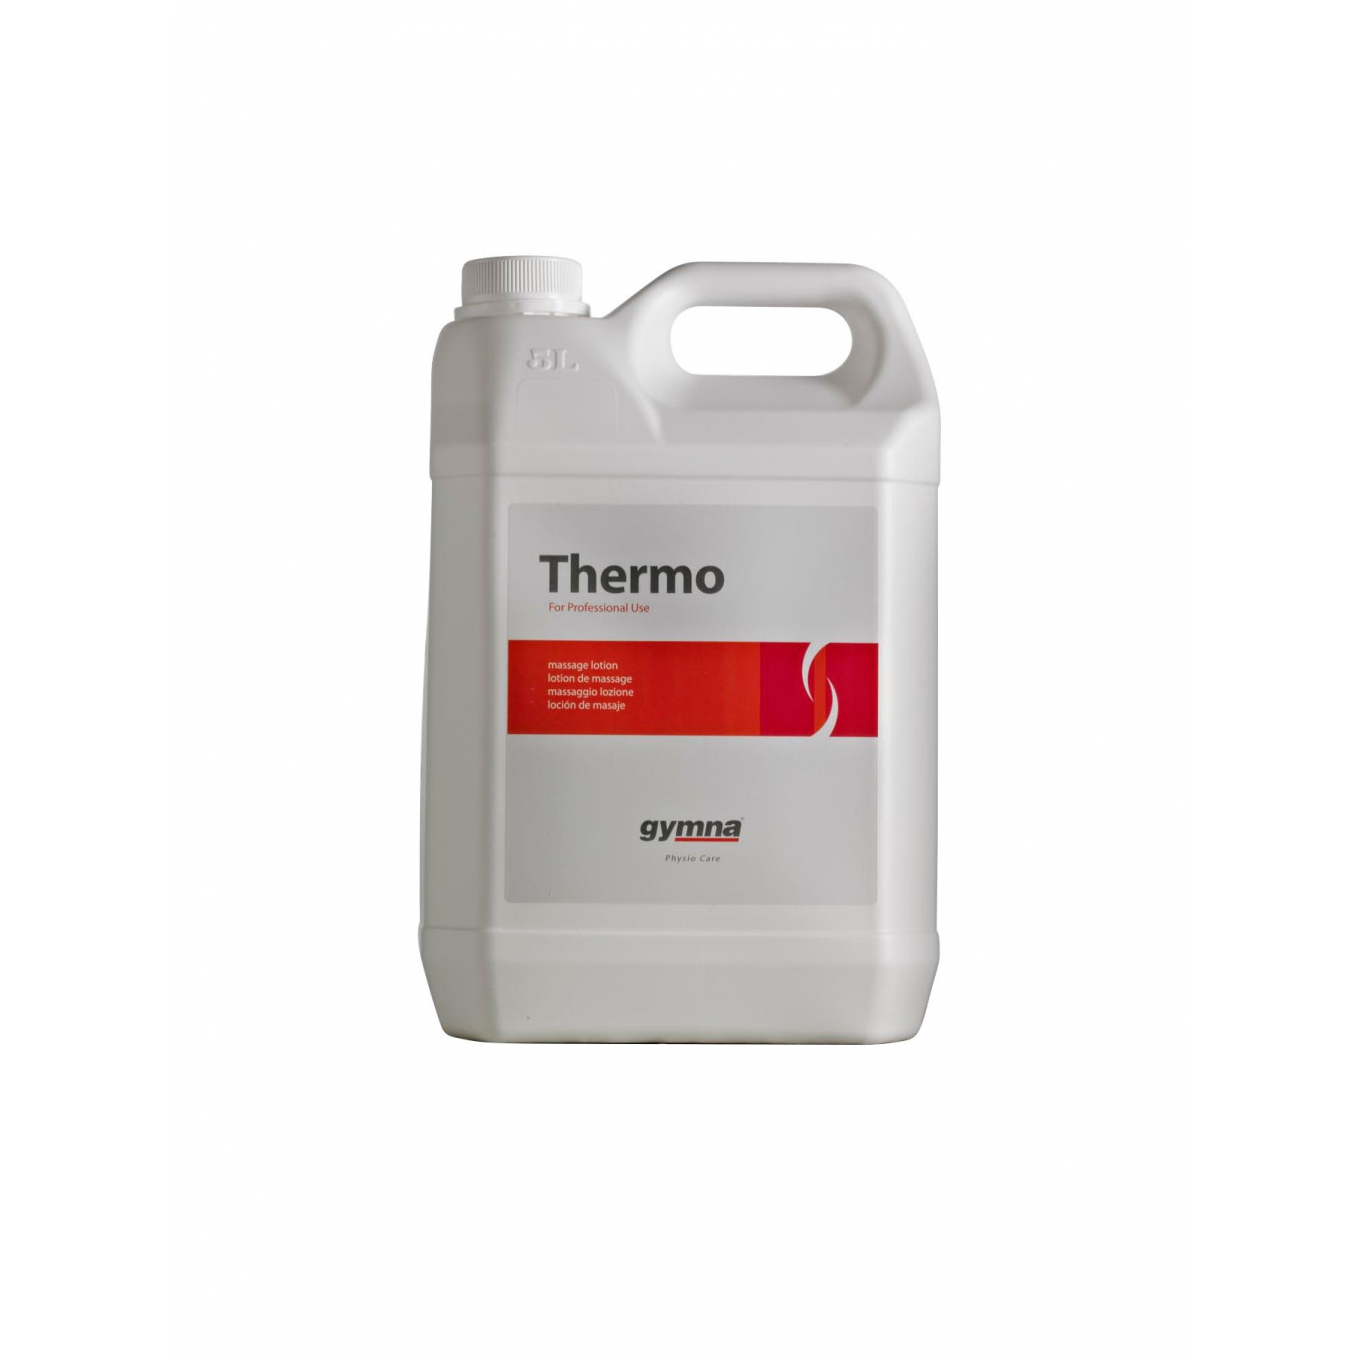 Physio Care Thermo massagelotion - 5 l